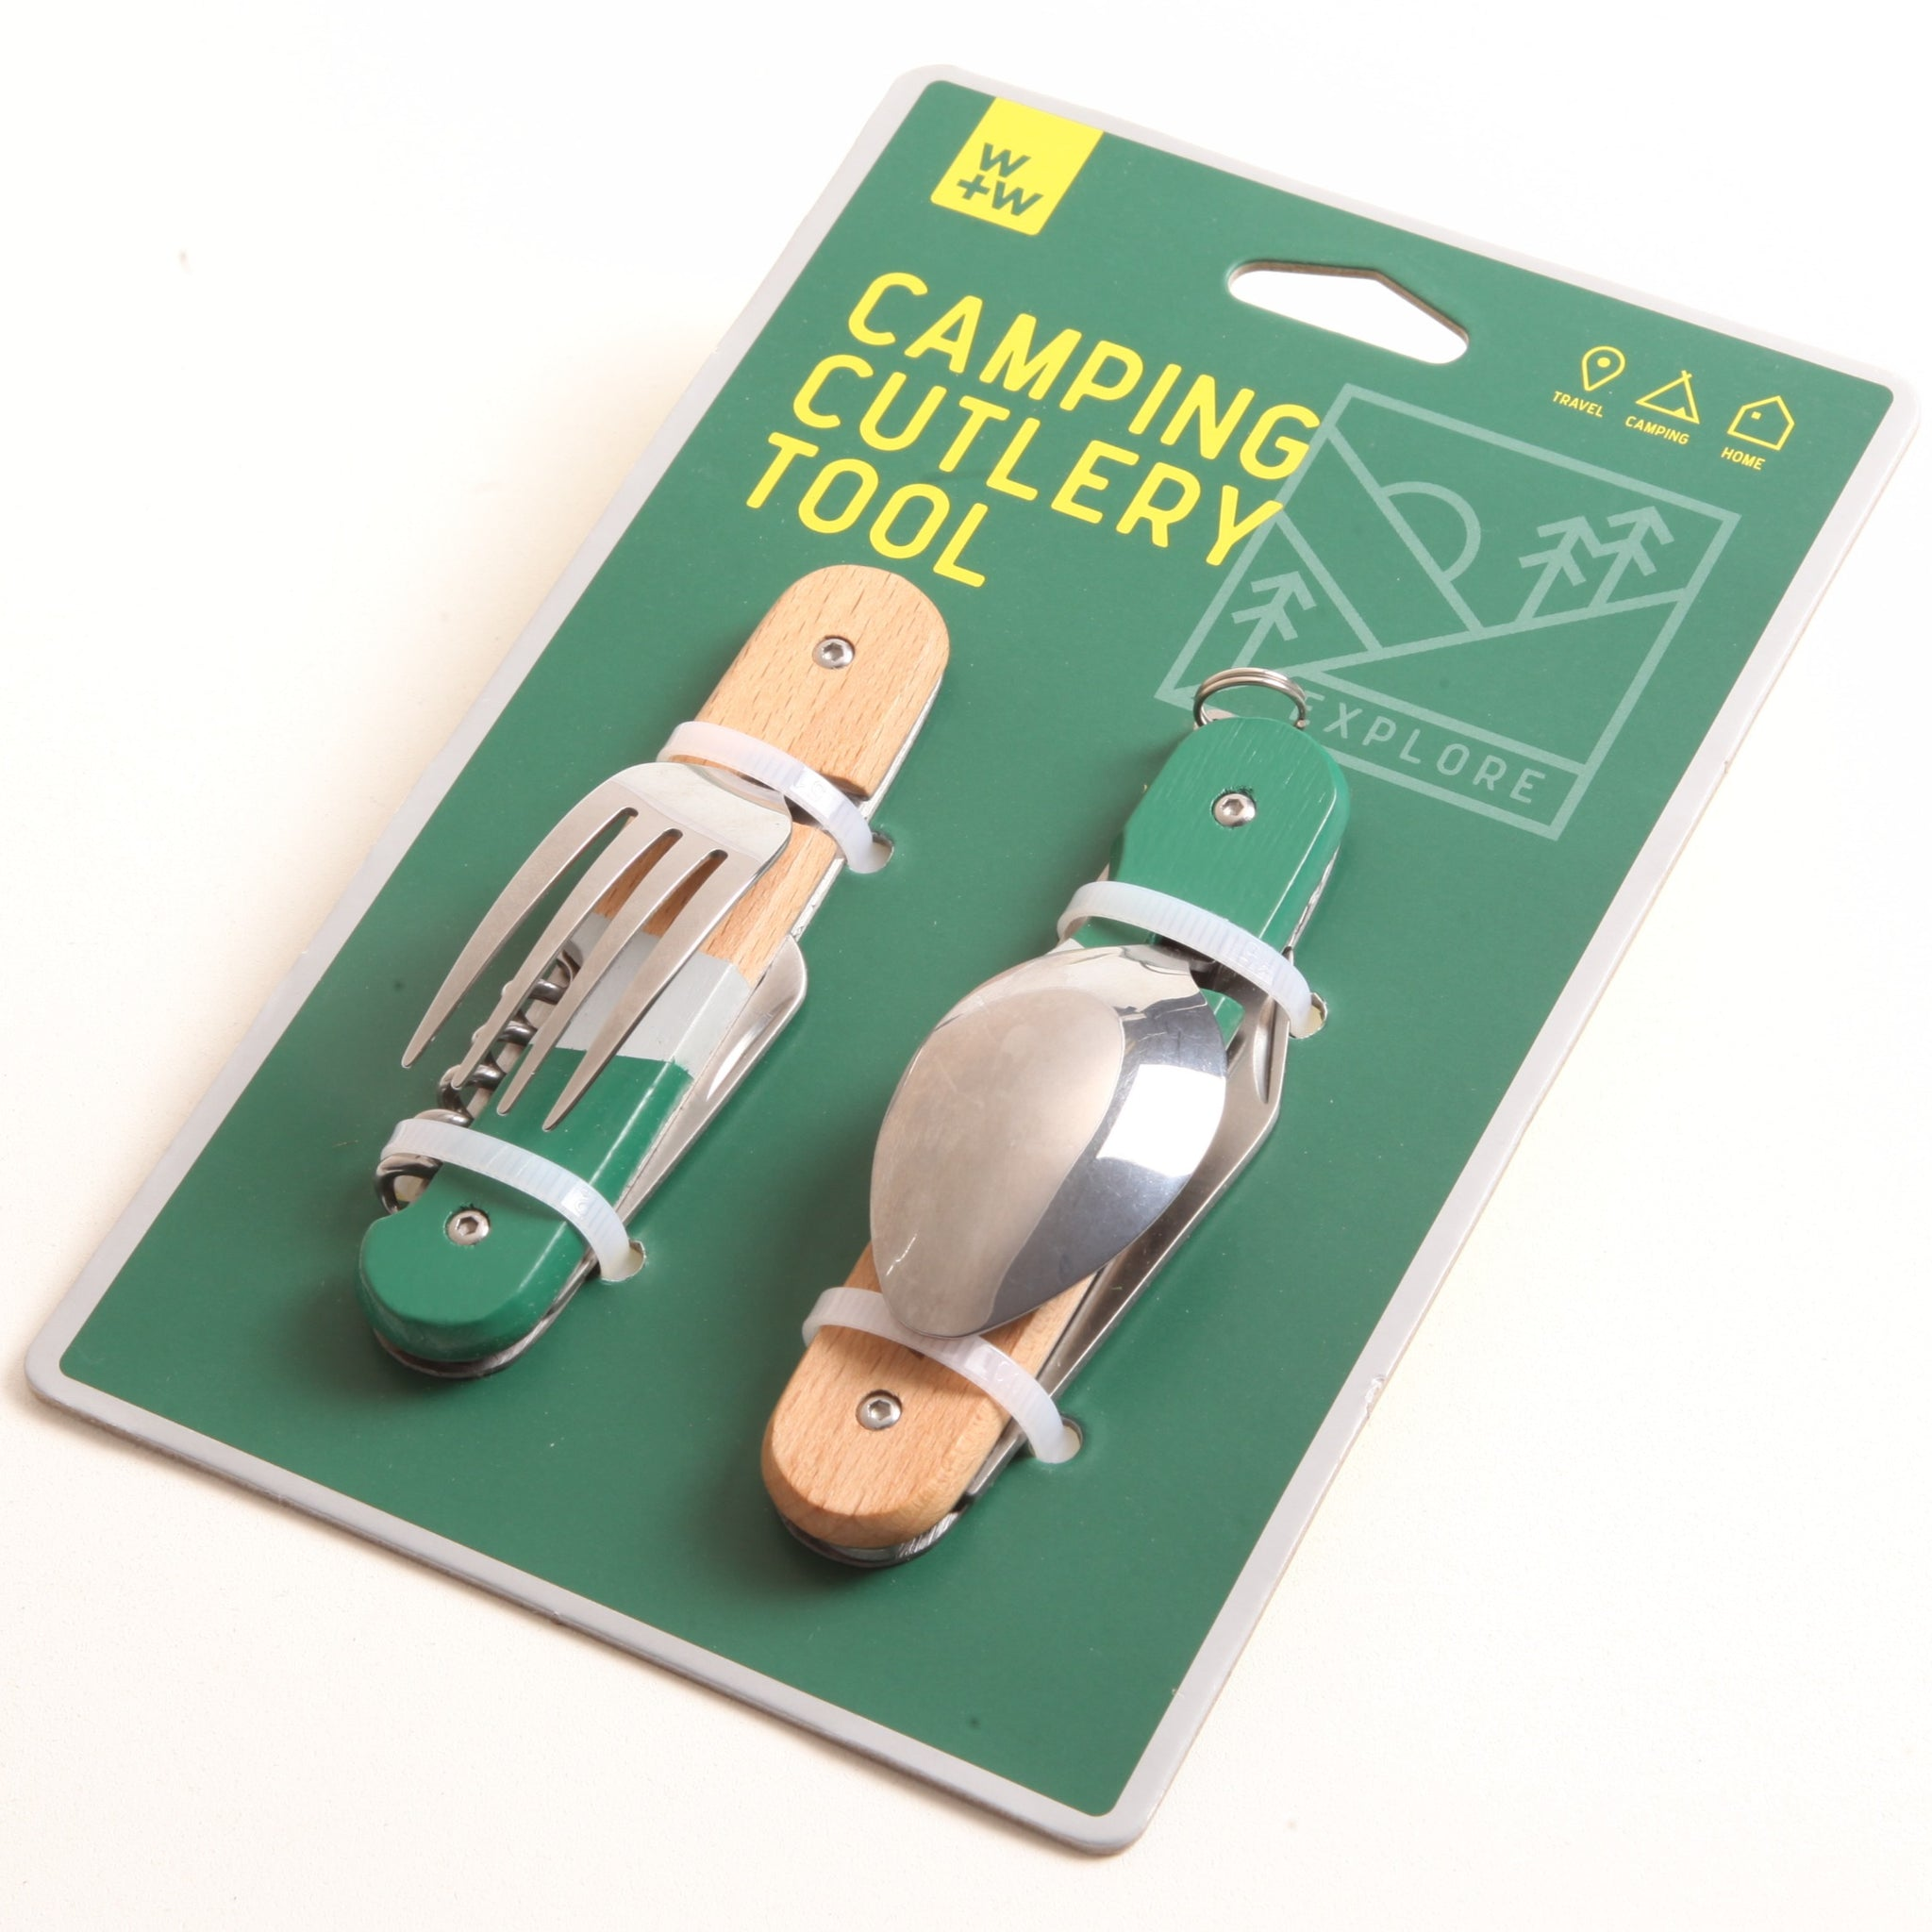 Camping Cutlery Tools